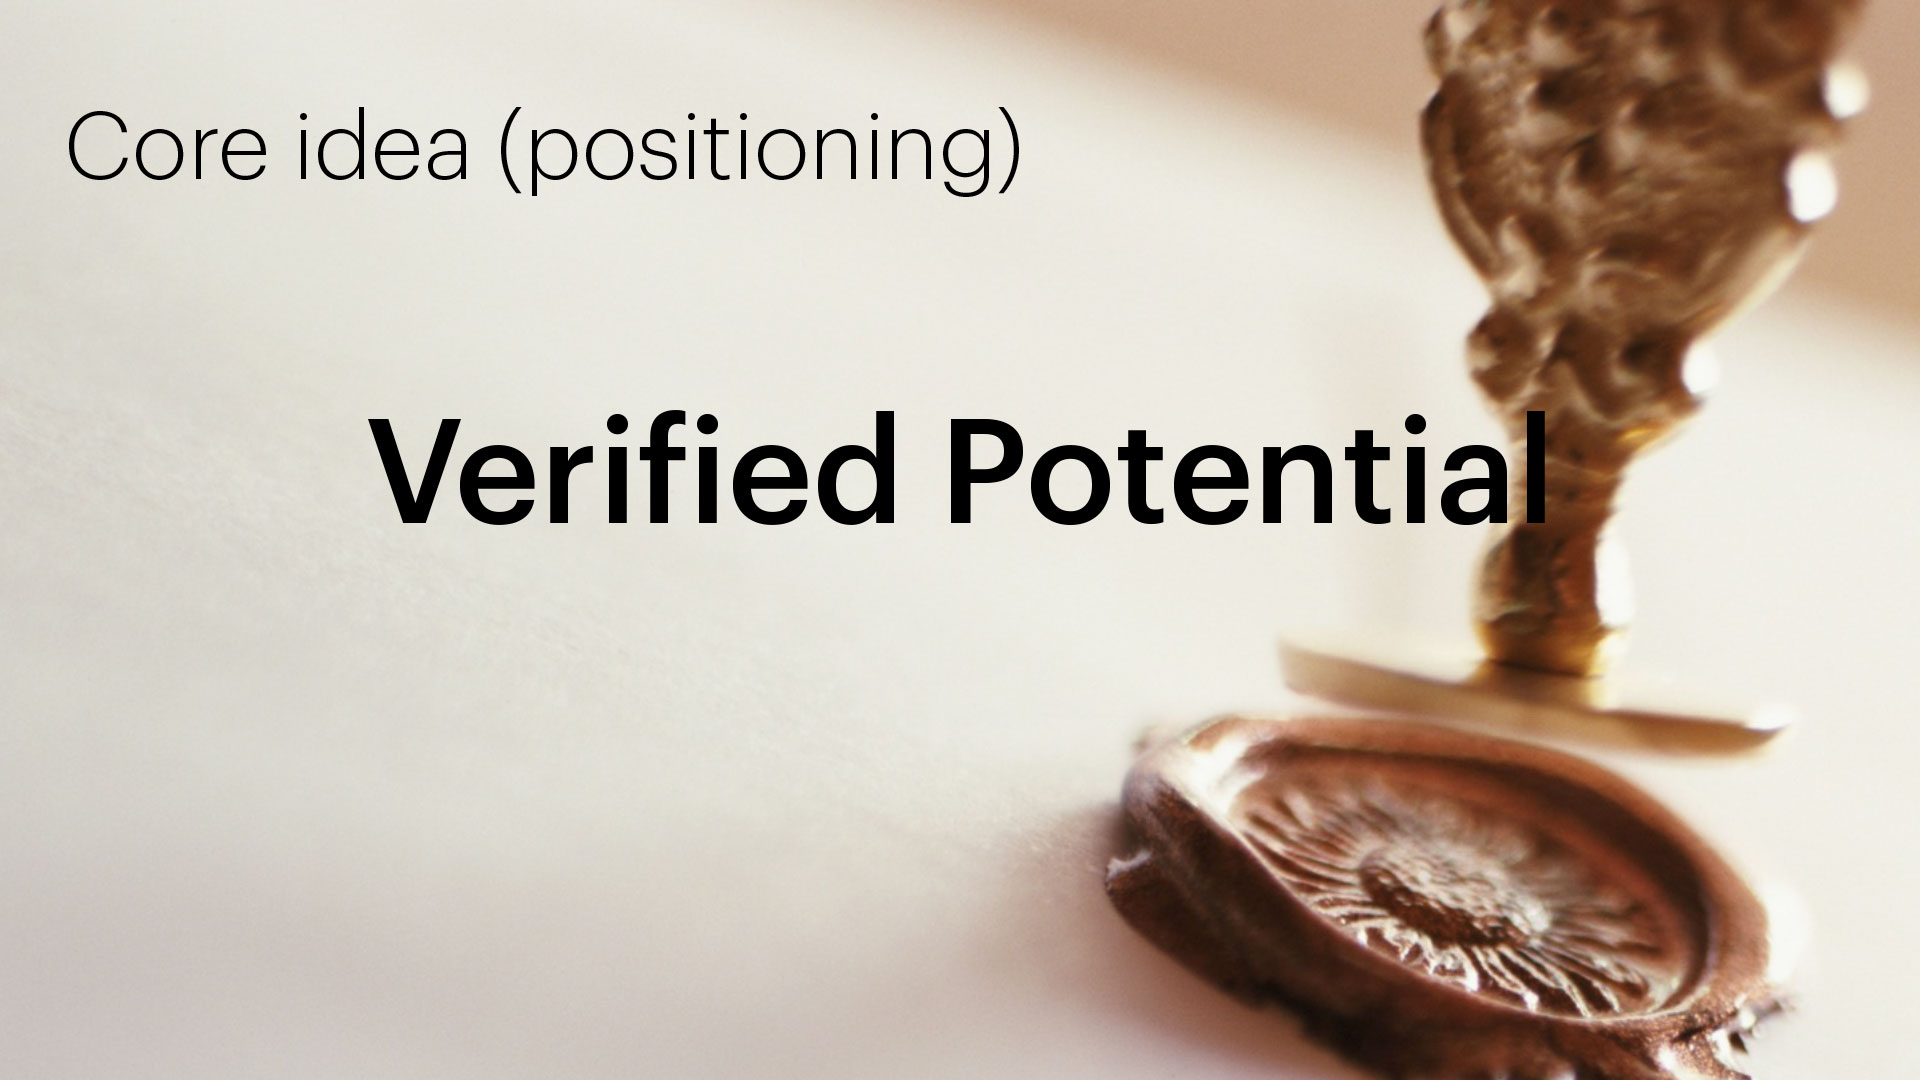 bTru positioning statement: Verified Potential